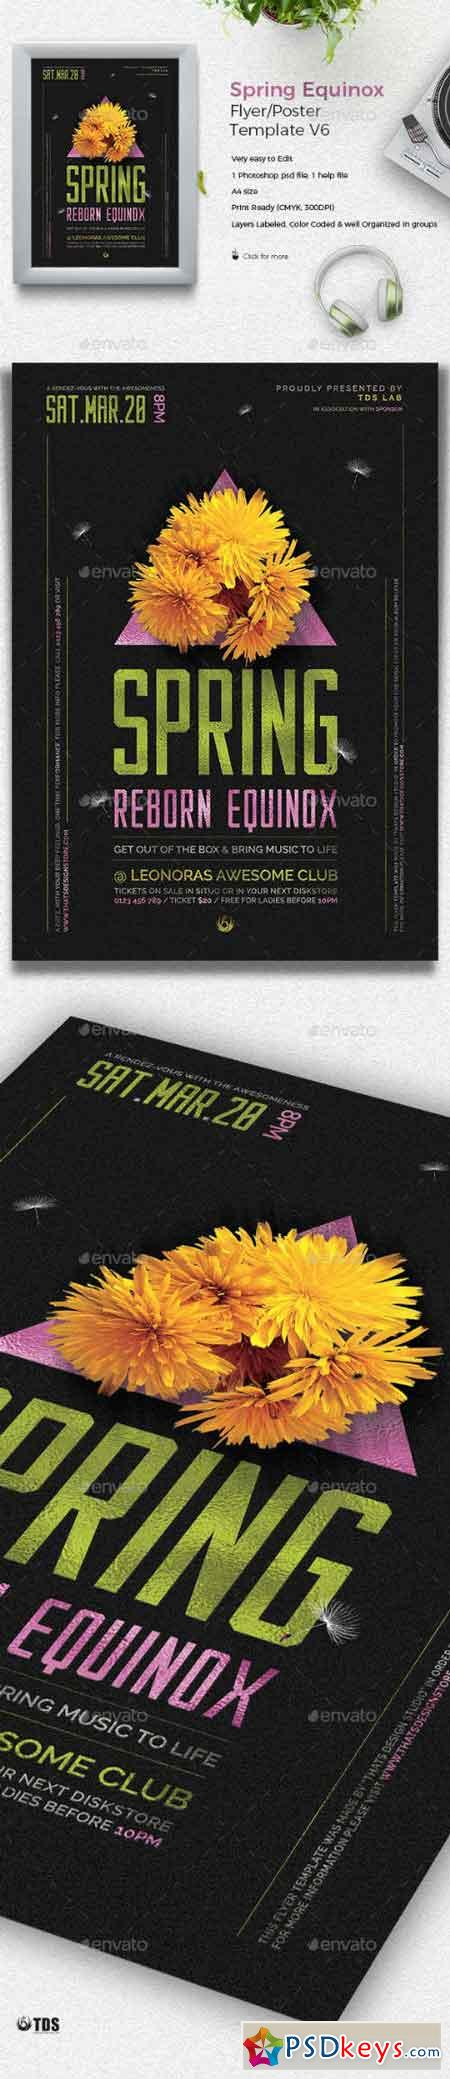 Spring Equinox Flyer Template V6 19373230